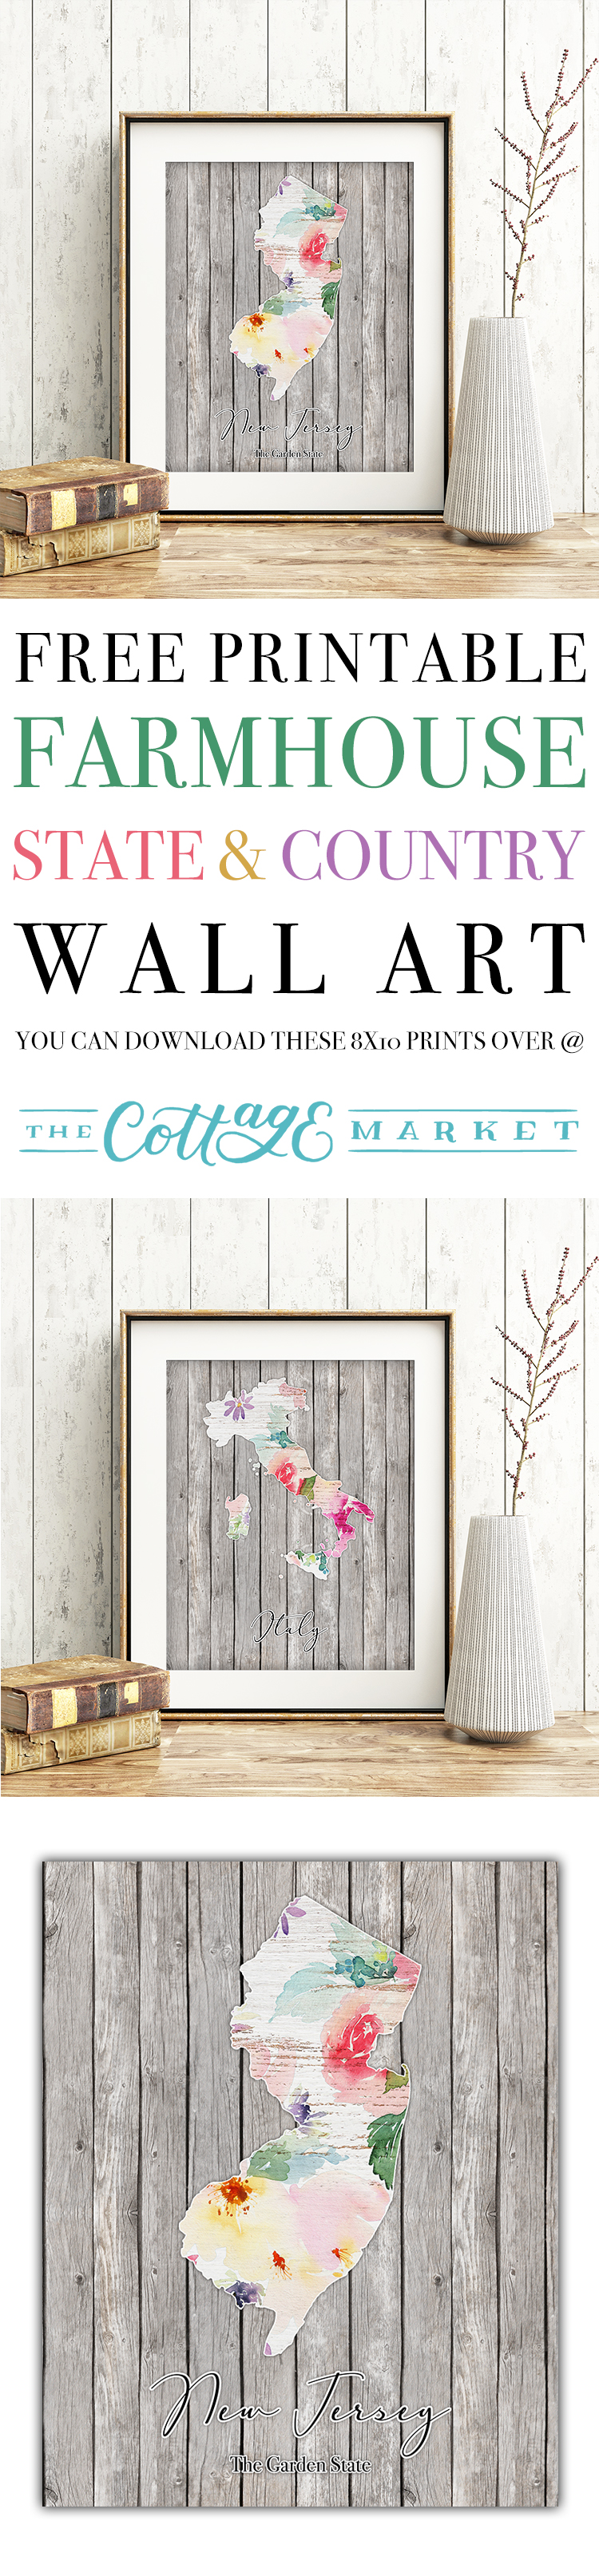 The Best Free Printable Farmhouse Wall Art Prints are here for you to check out and choose. There are so many options you won't know where to start! Enjoy!